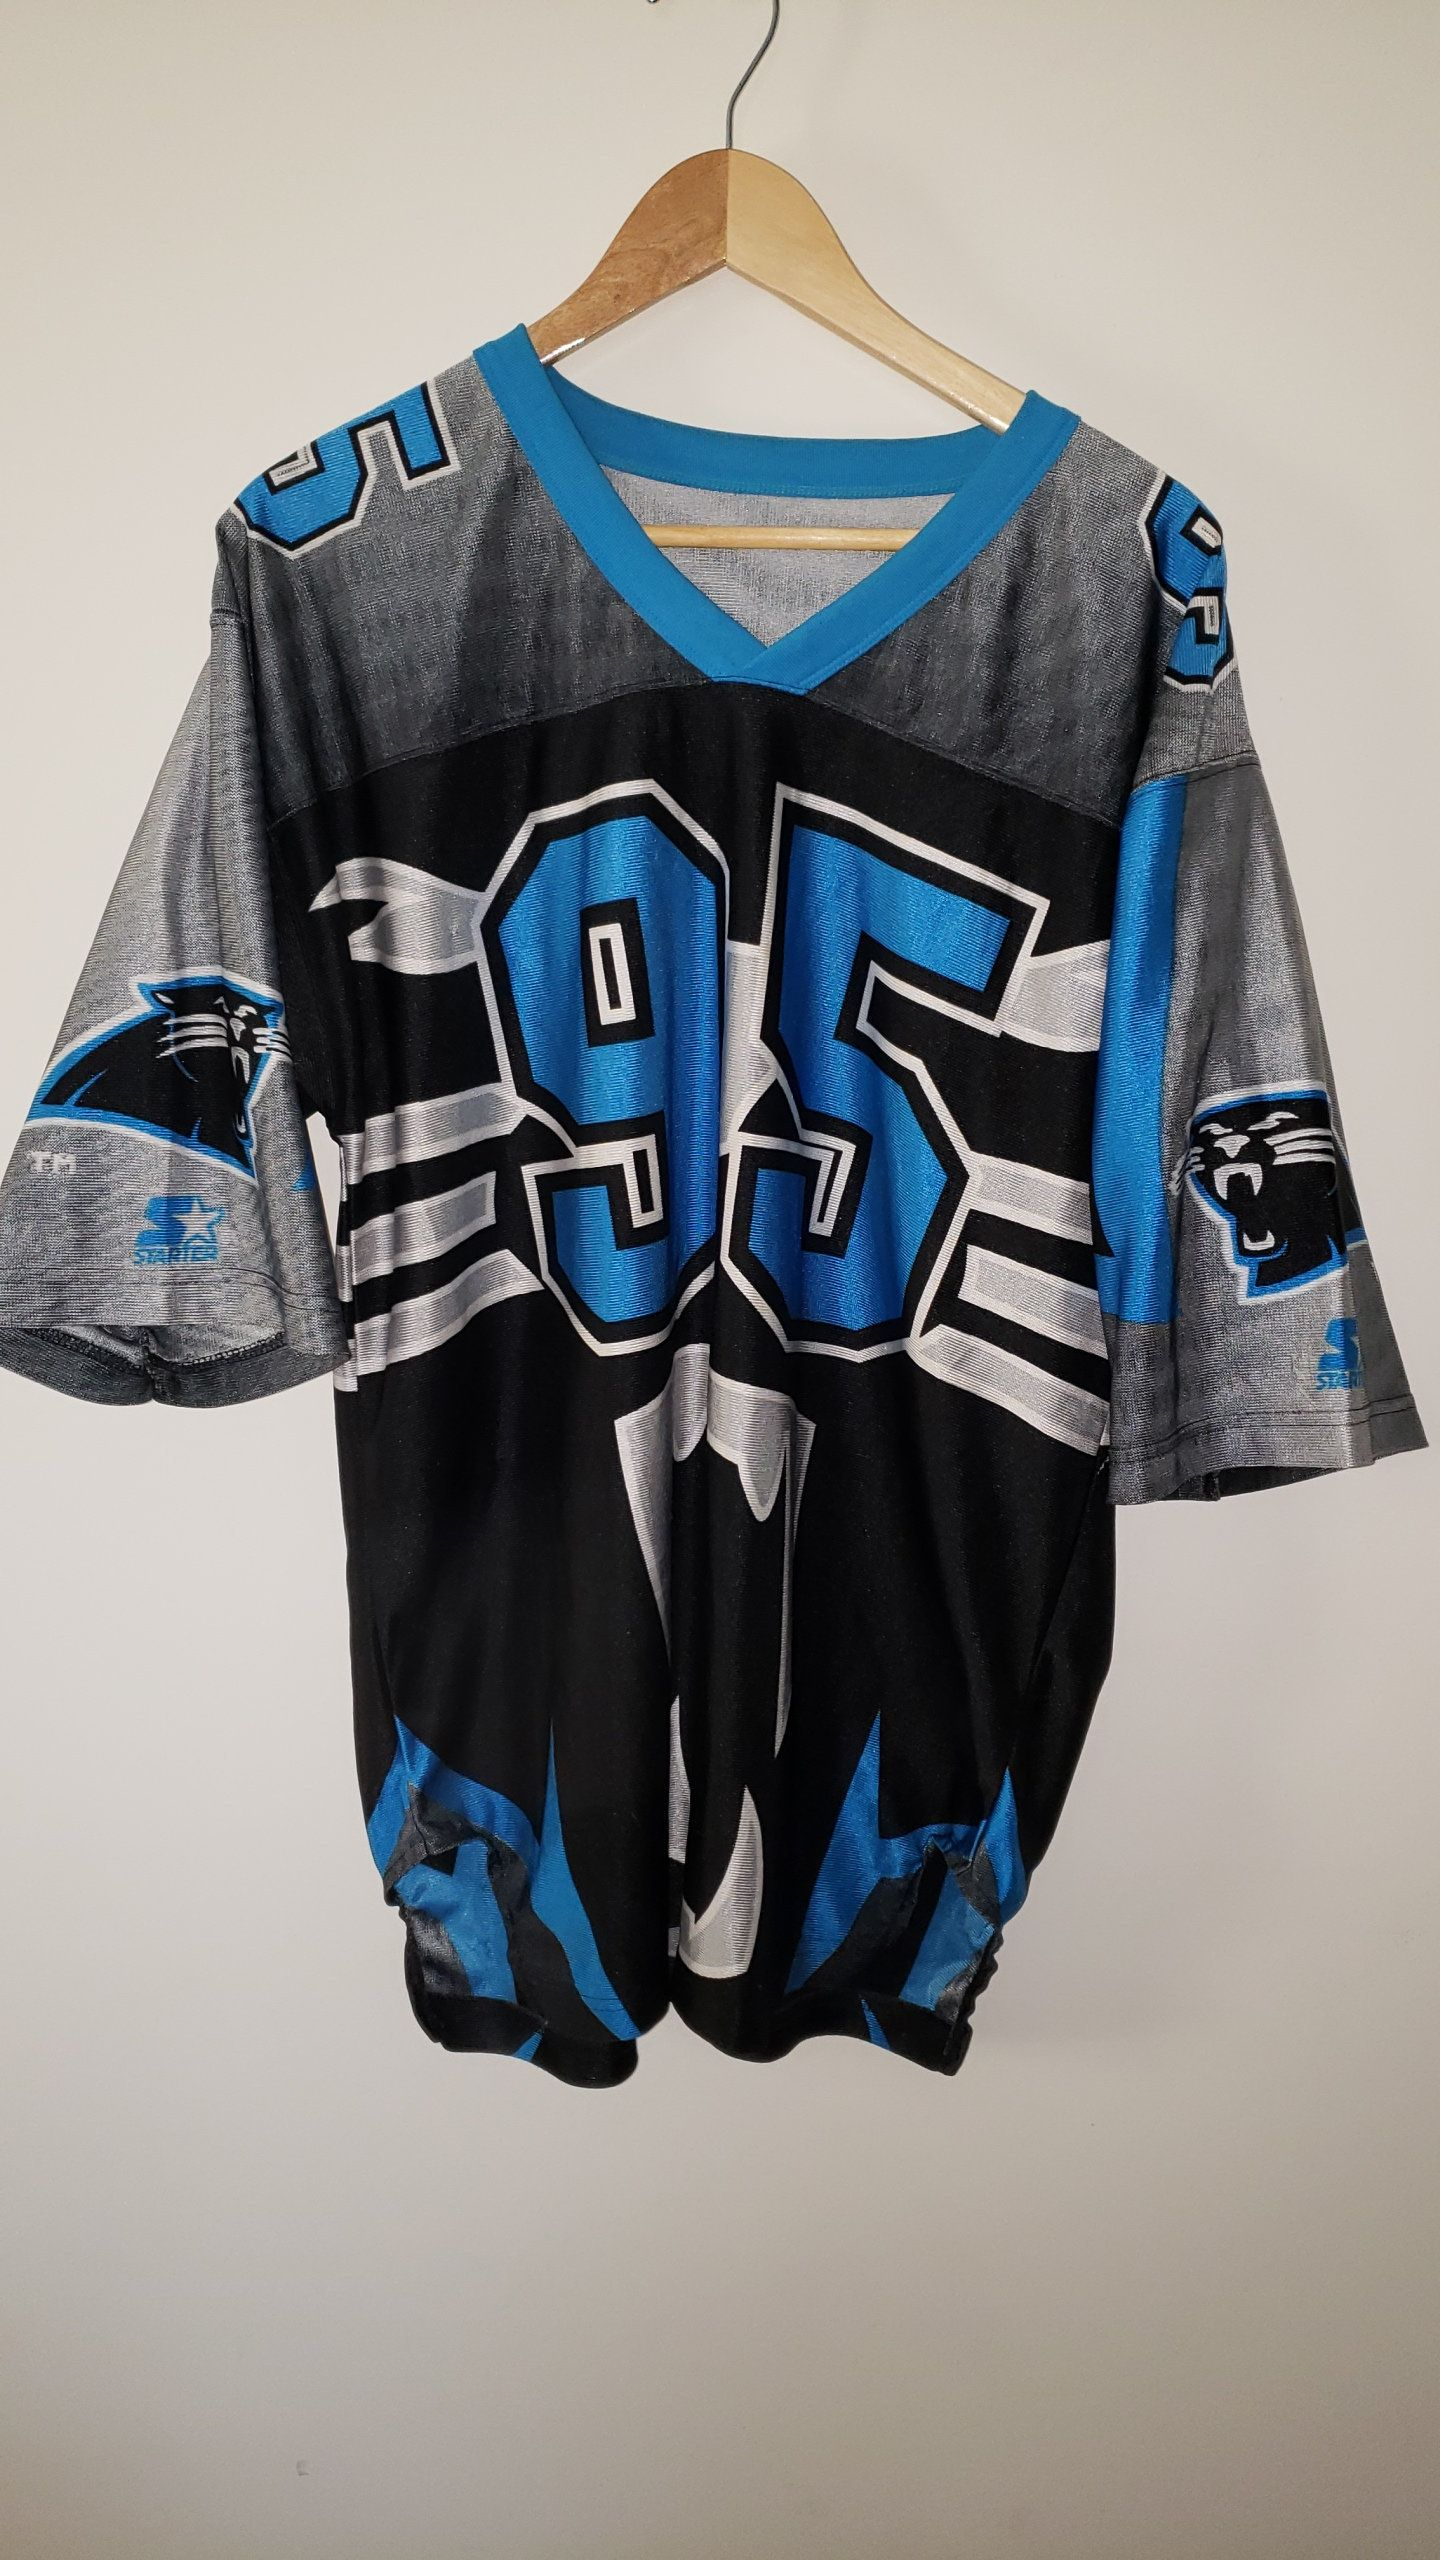 b5e2647fd Vintage 90 s NFL Carolina Panthers  95 All Over Print Starter Jersey - Sixe  XL by RackRaidersVtg on Etsy